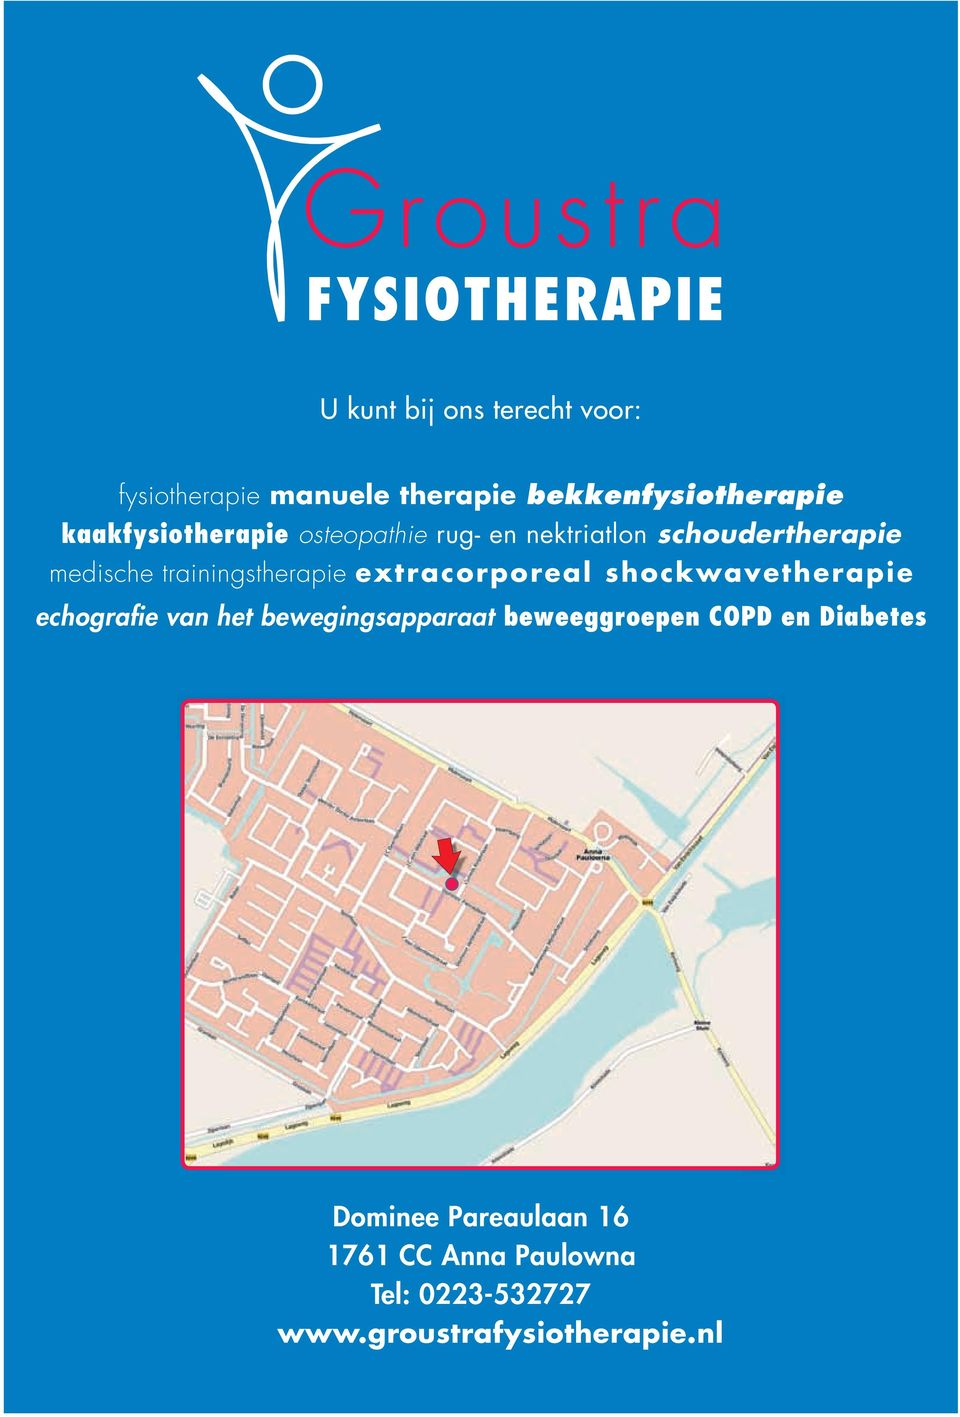 trainingstherapie extracorporeal shockwavetherapie echografie van het bewegingsapparaat